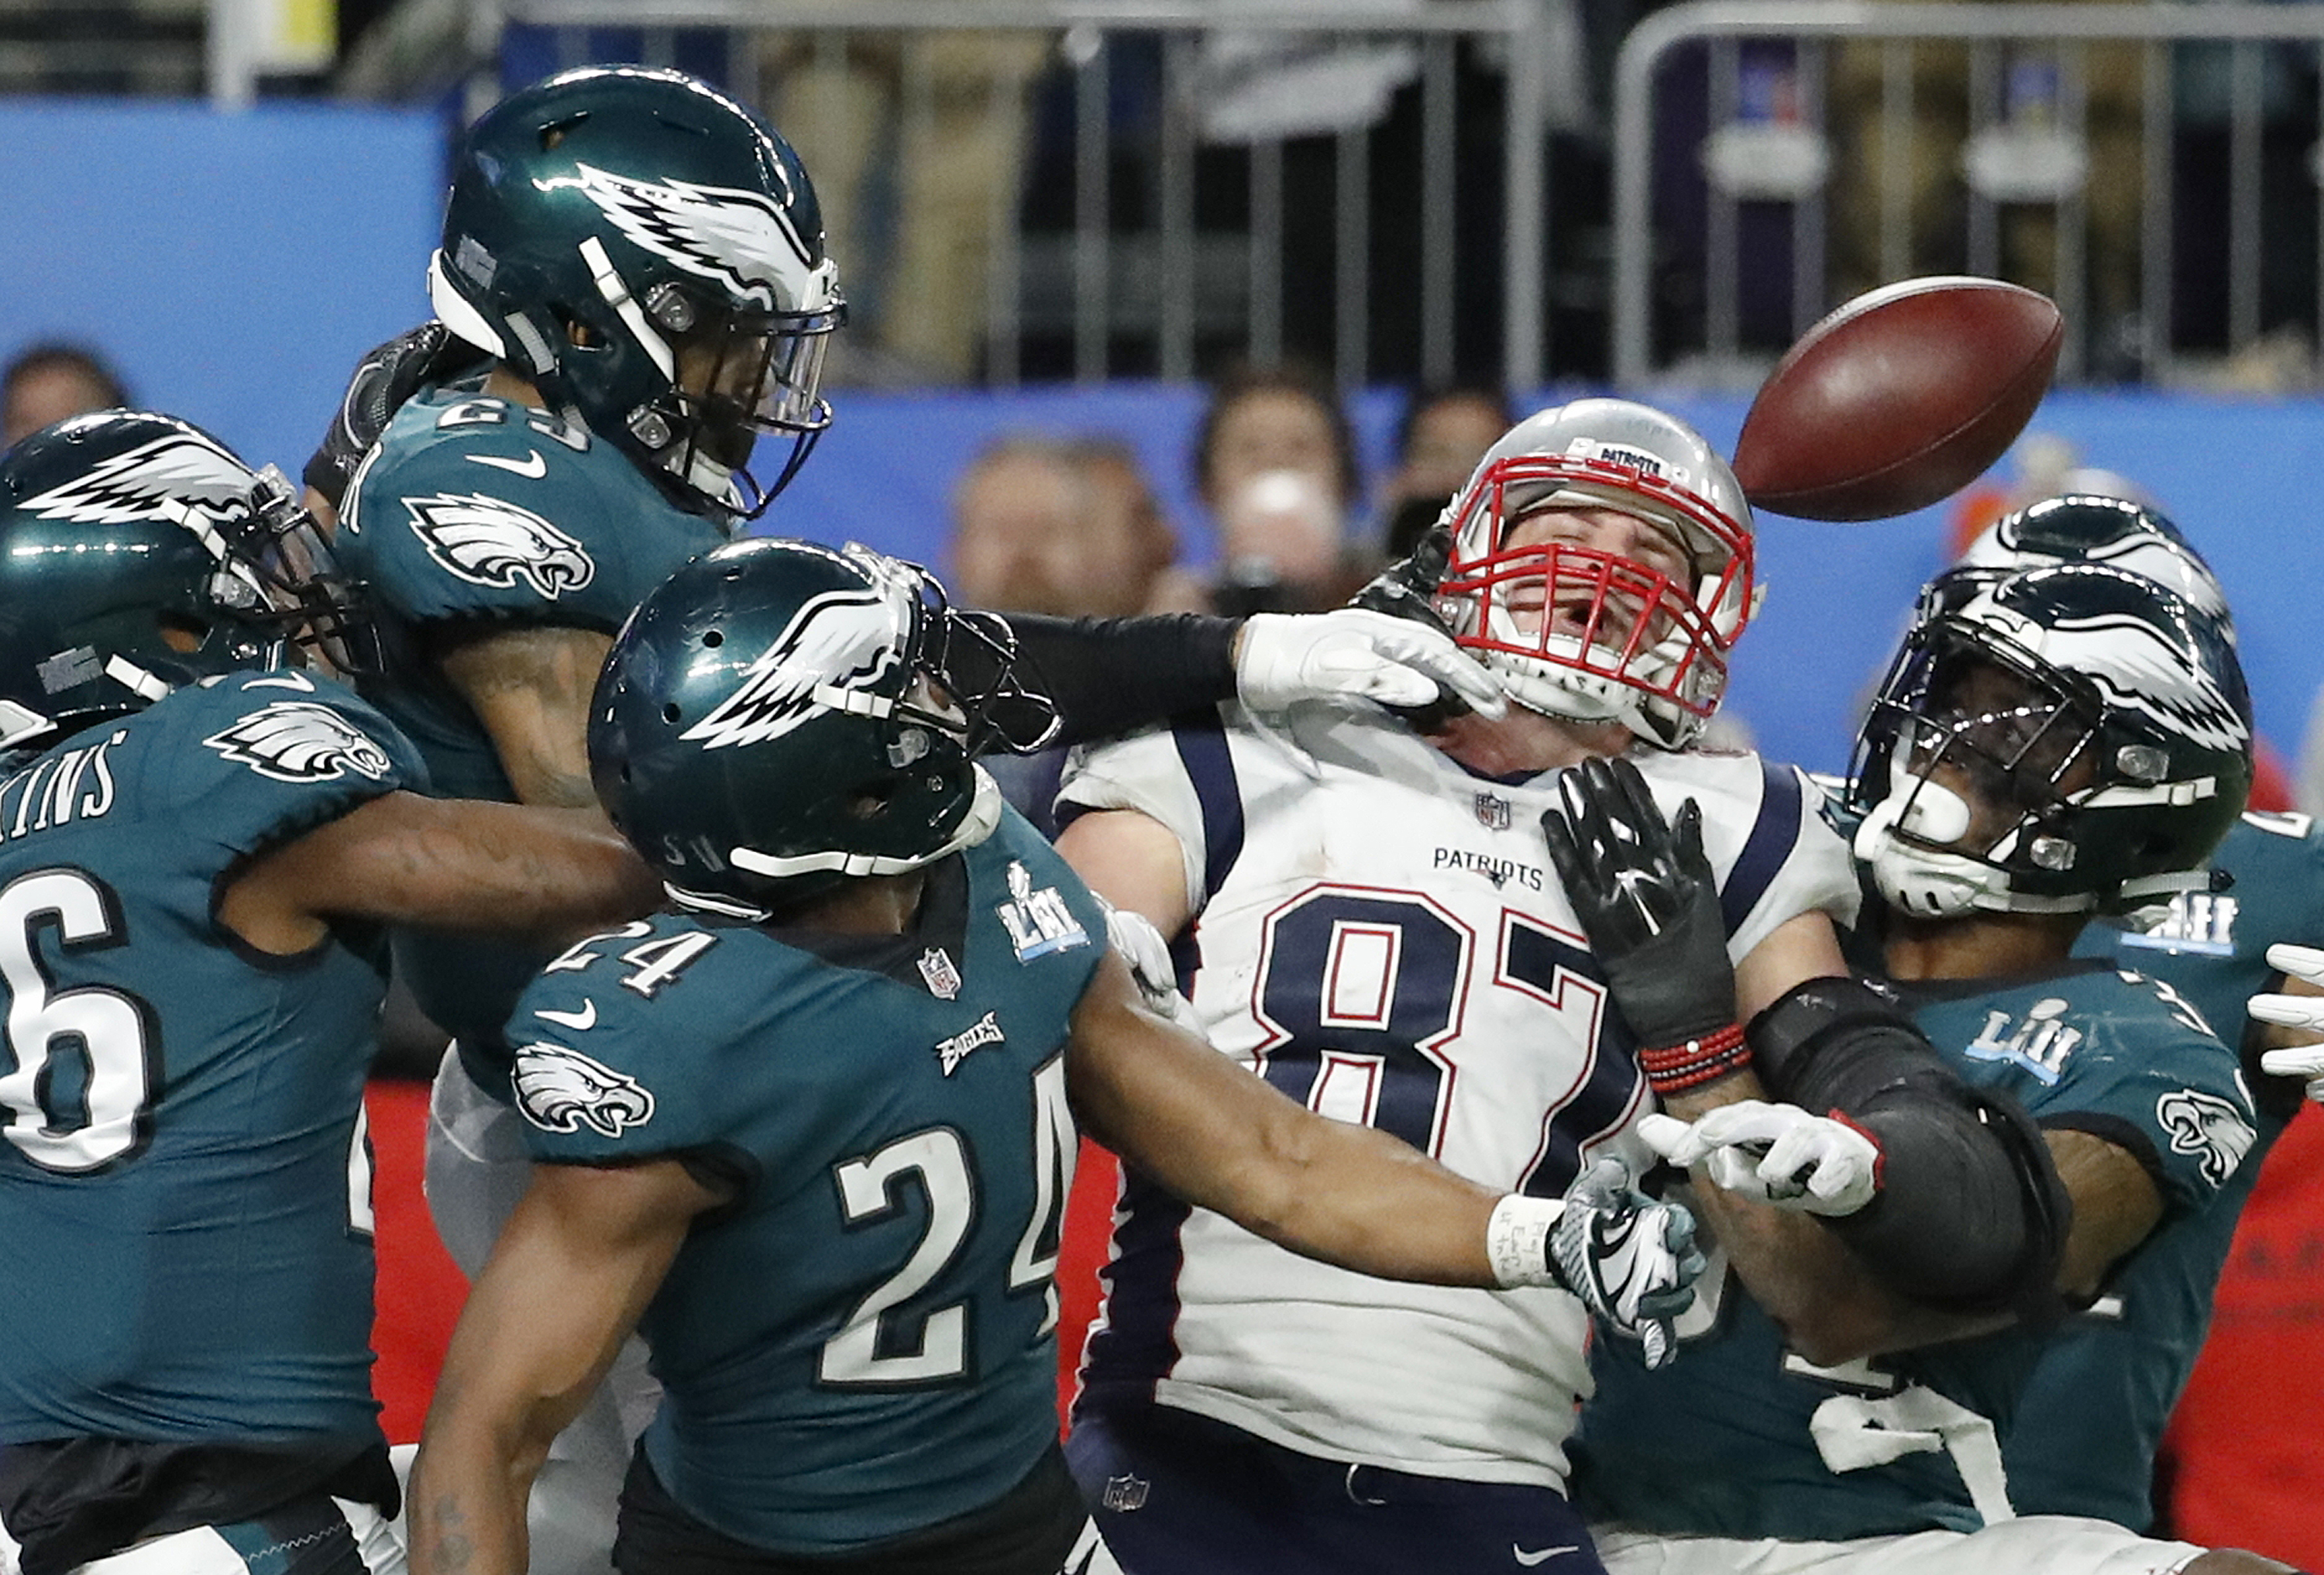 "<div class=""meta image-caption""><div class=""origin-logo origin-image ap""><span>AP</span></div><span class=""caption-text"">New England Patriots' Rob Gronkowski (87) cannot catch a pass during the second half of the NFL Super Bowl 52 football game against the Philadelphia Eagles Sunday, Feb. 4, 2018. (AP Photo/Matt York)</span></div>"